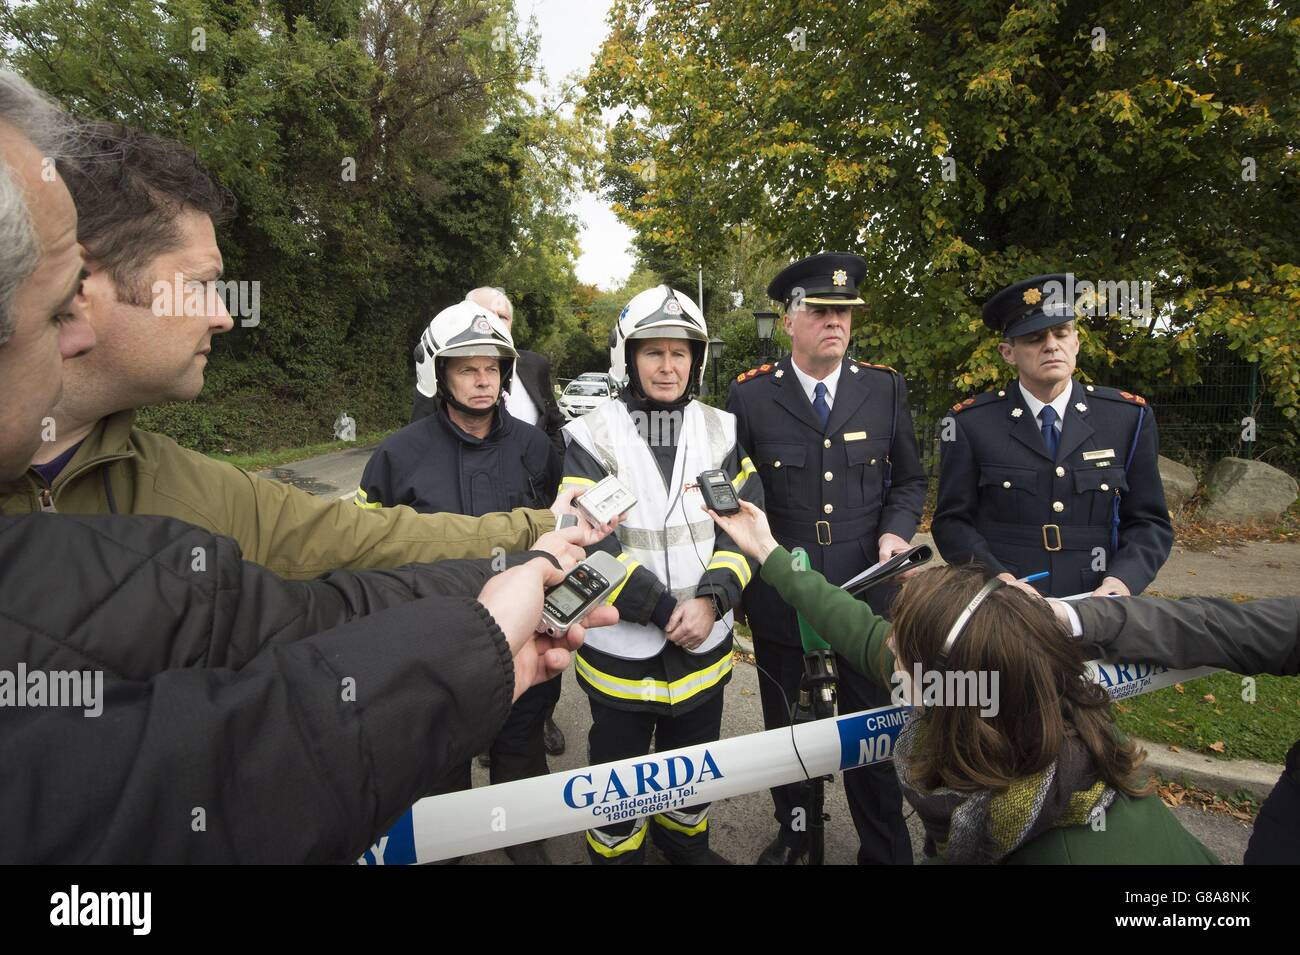 Gerry Stanley, Dennis Keeley, assistant chief fire officer Dublin City Fire Brigade, Superintendent Diarmuid O'Sullivan - Stock Image